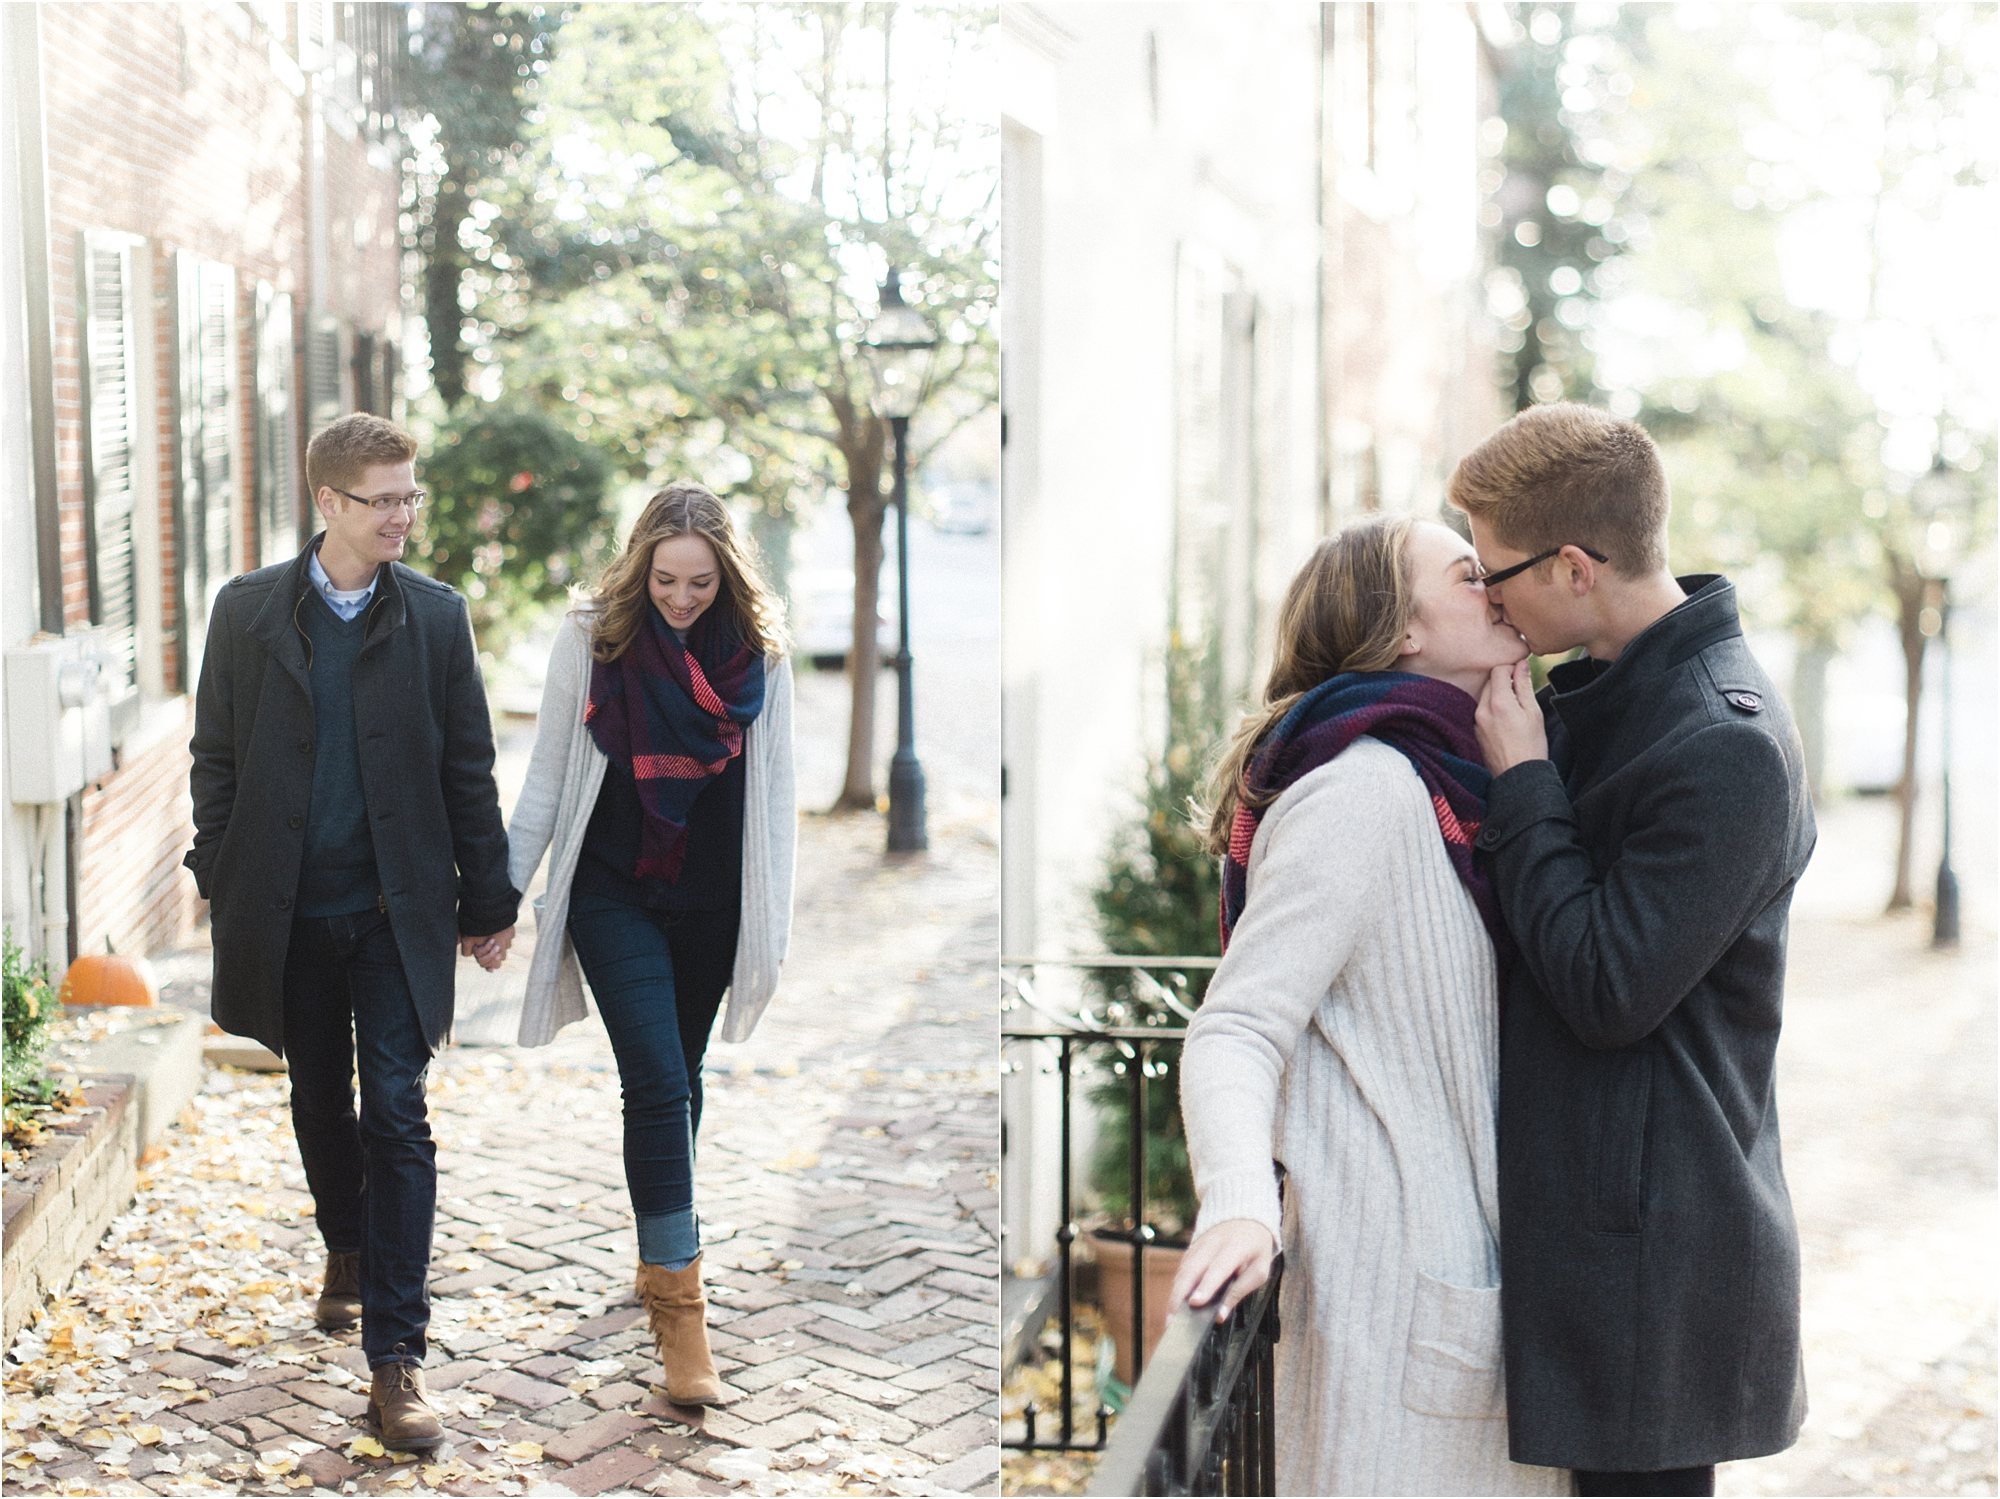 stephanie-yonce-photography-old-town-alexandria-fall-engagement-photos_0004.jpg